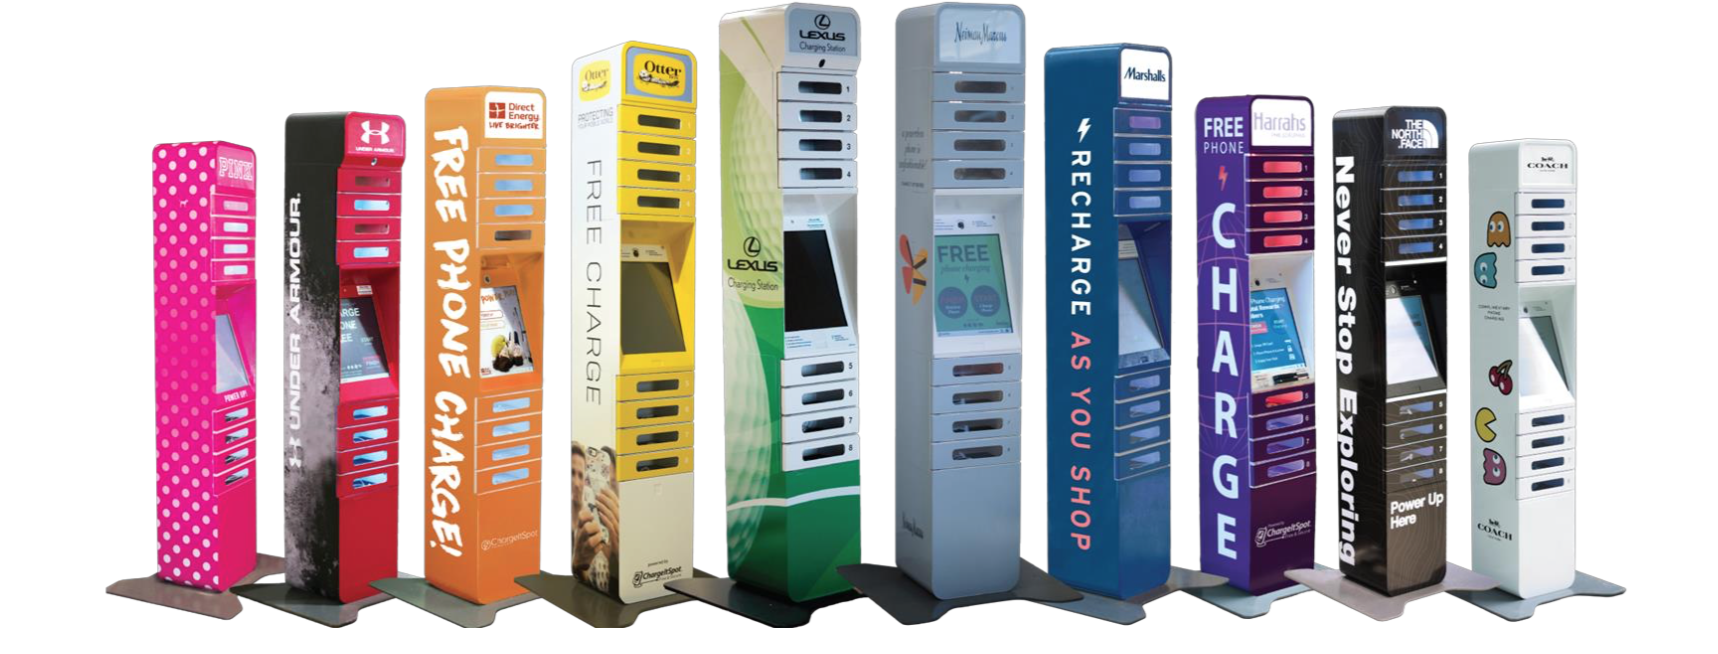 ChargeItSpot phone charging stations design